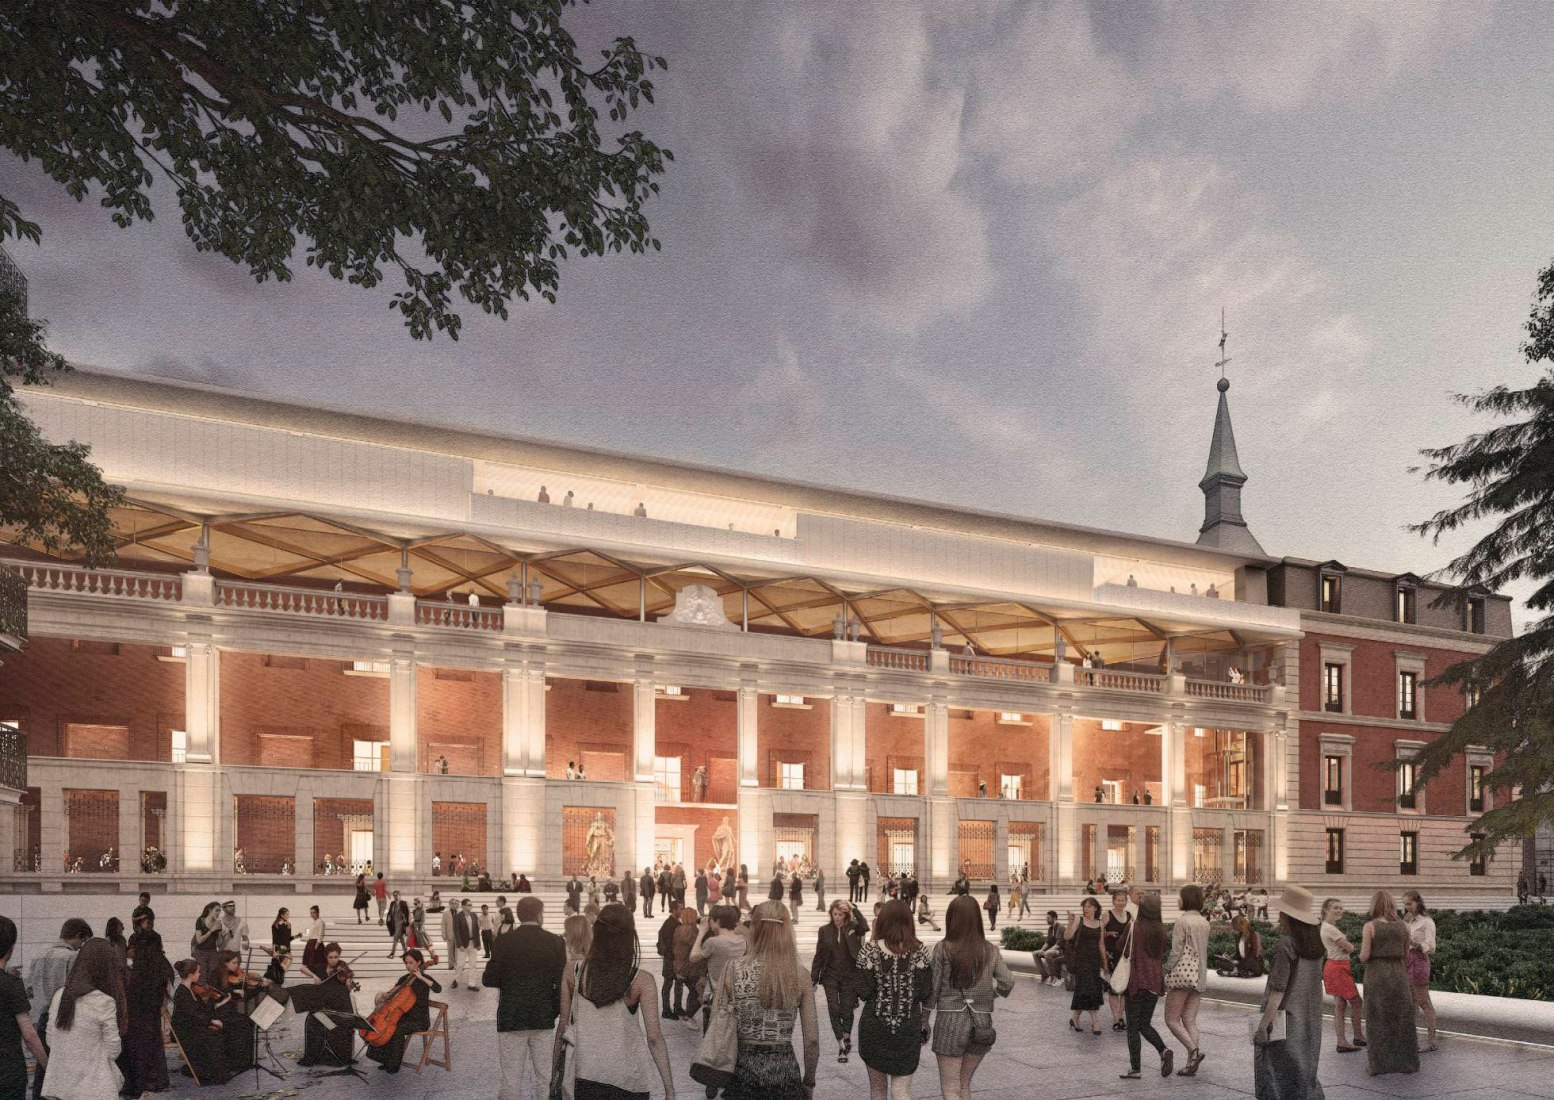 Exterior rendering to the Casón del Buen Retiro. Project by Foster + Partners. Image courtesy of Foster + Partners